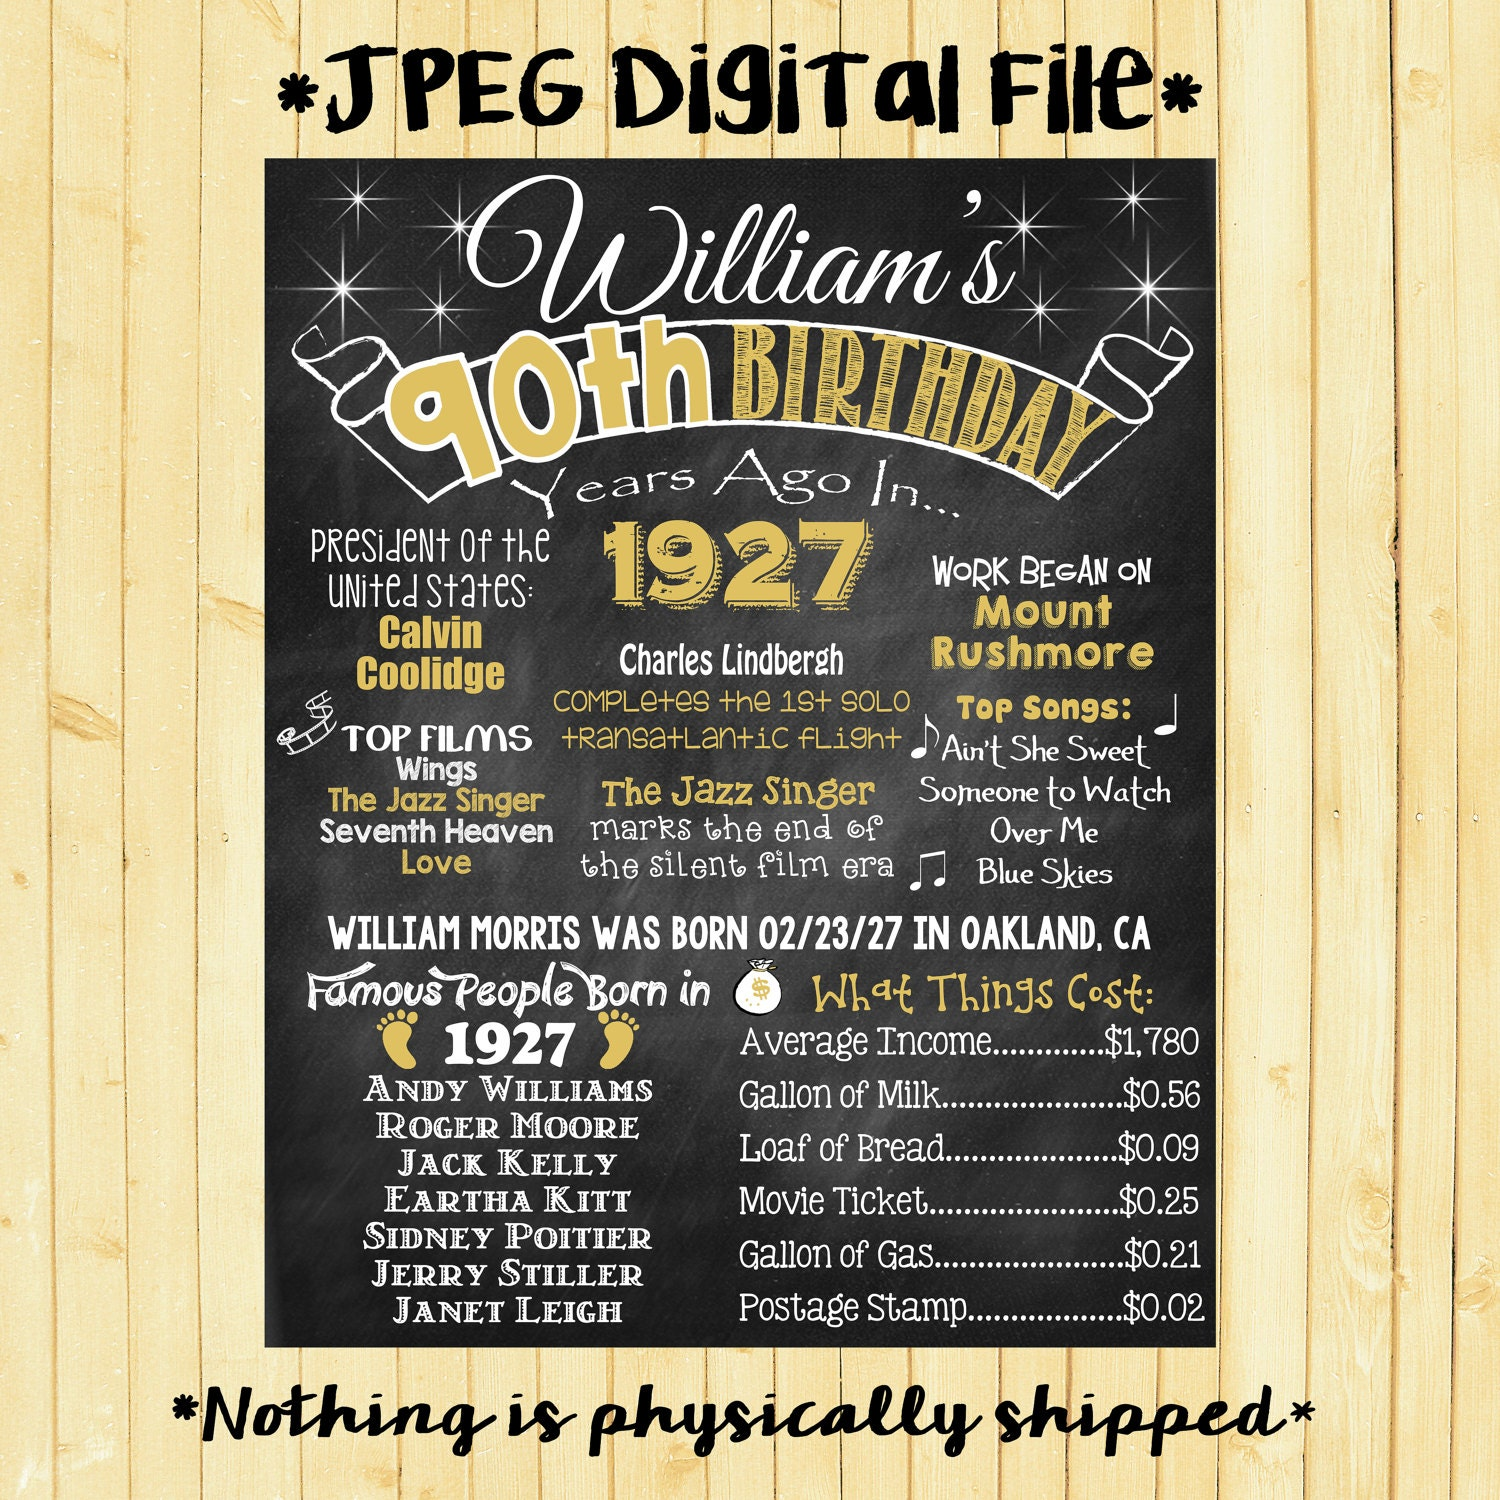 Gold 90th Birthday Chalkboard 1927 Poster 90 Years Ago In 1927